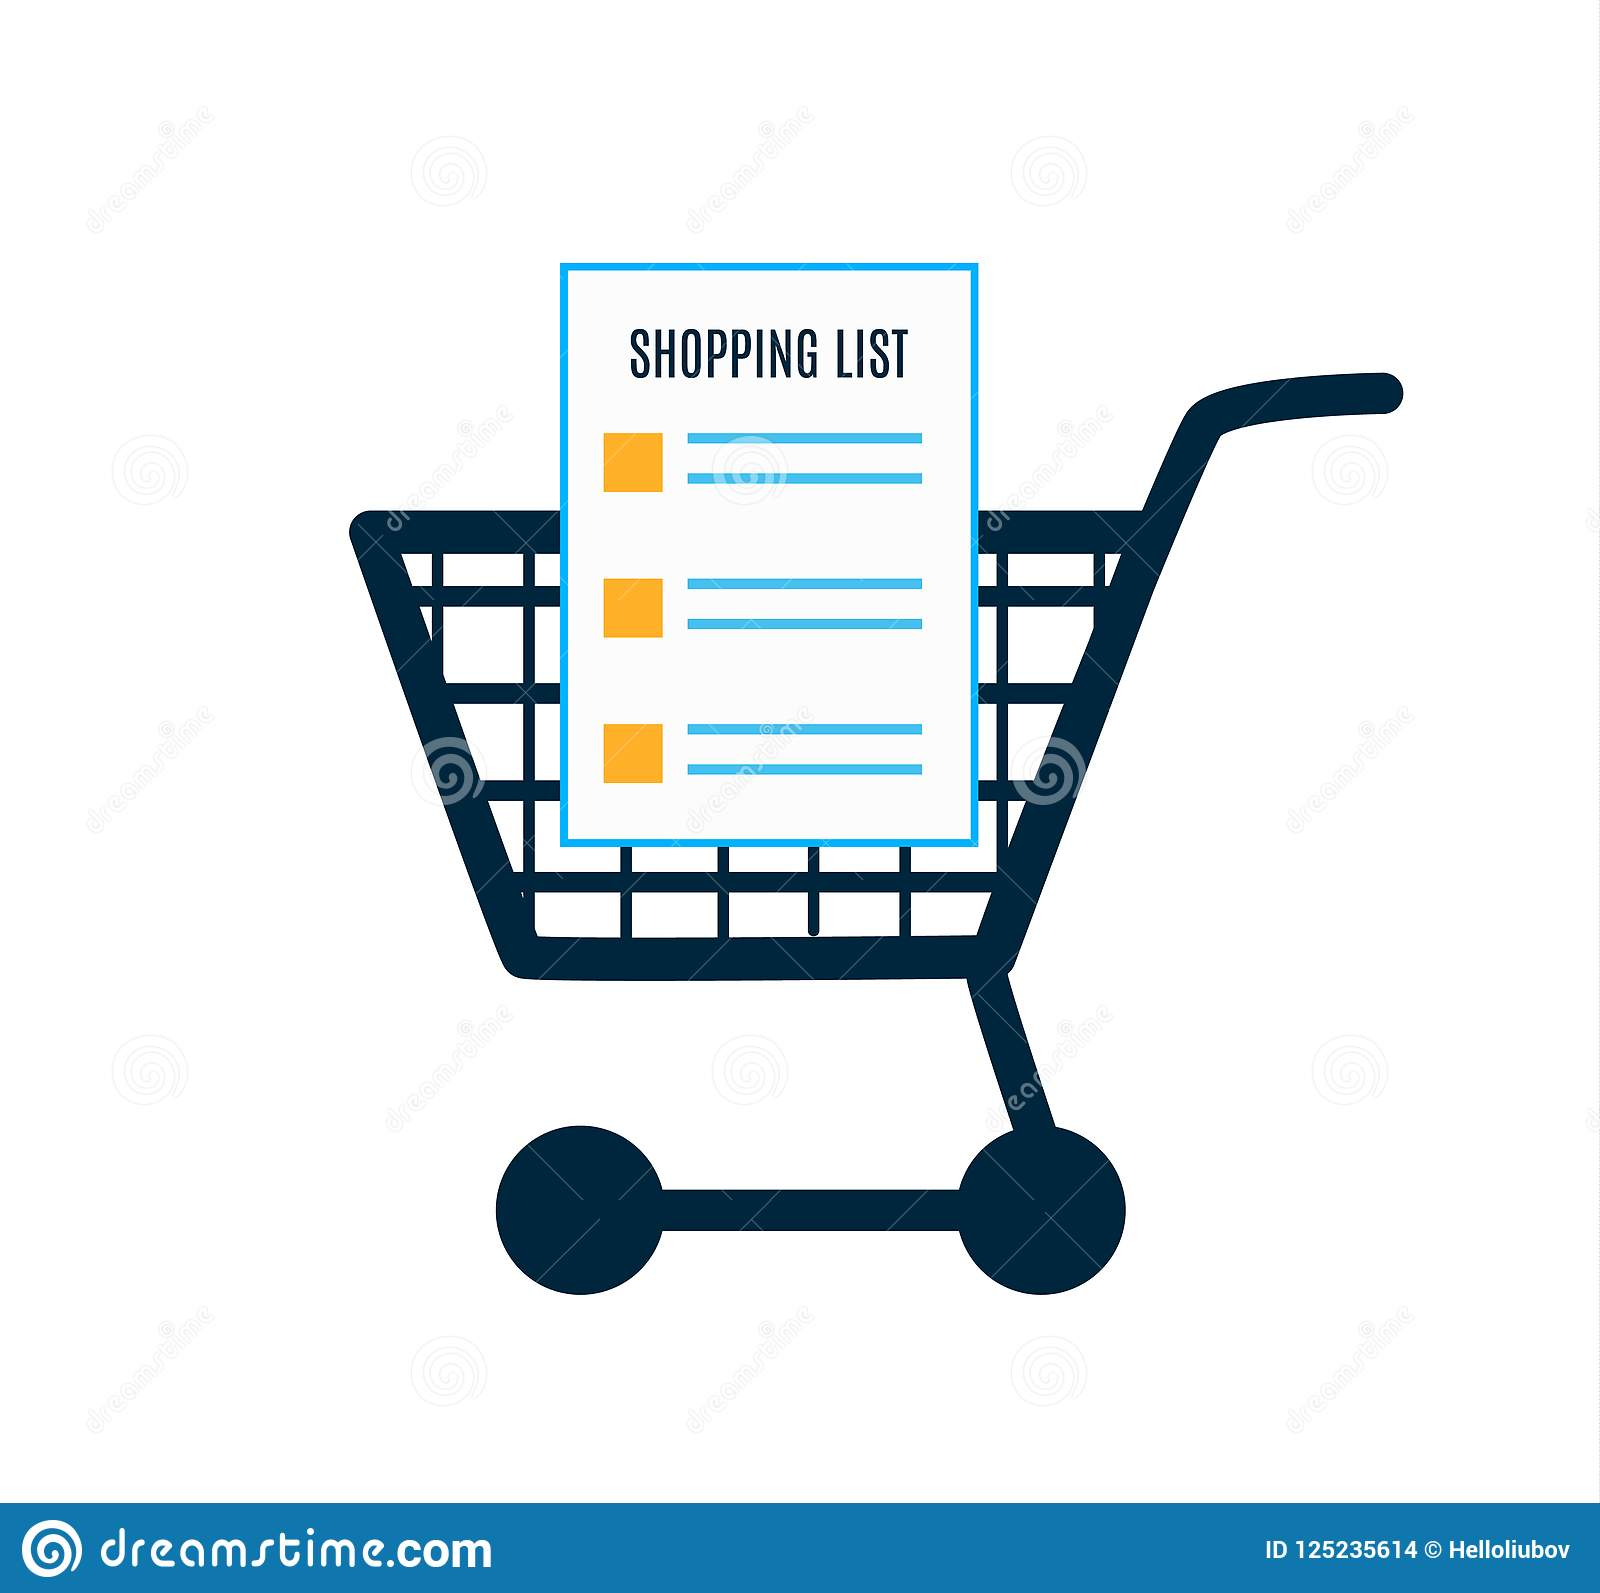 shopping cart icon flat design empty shopping cart with blank shopping list vector